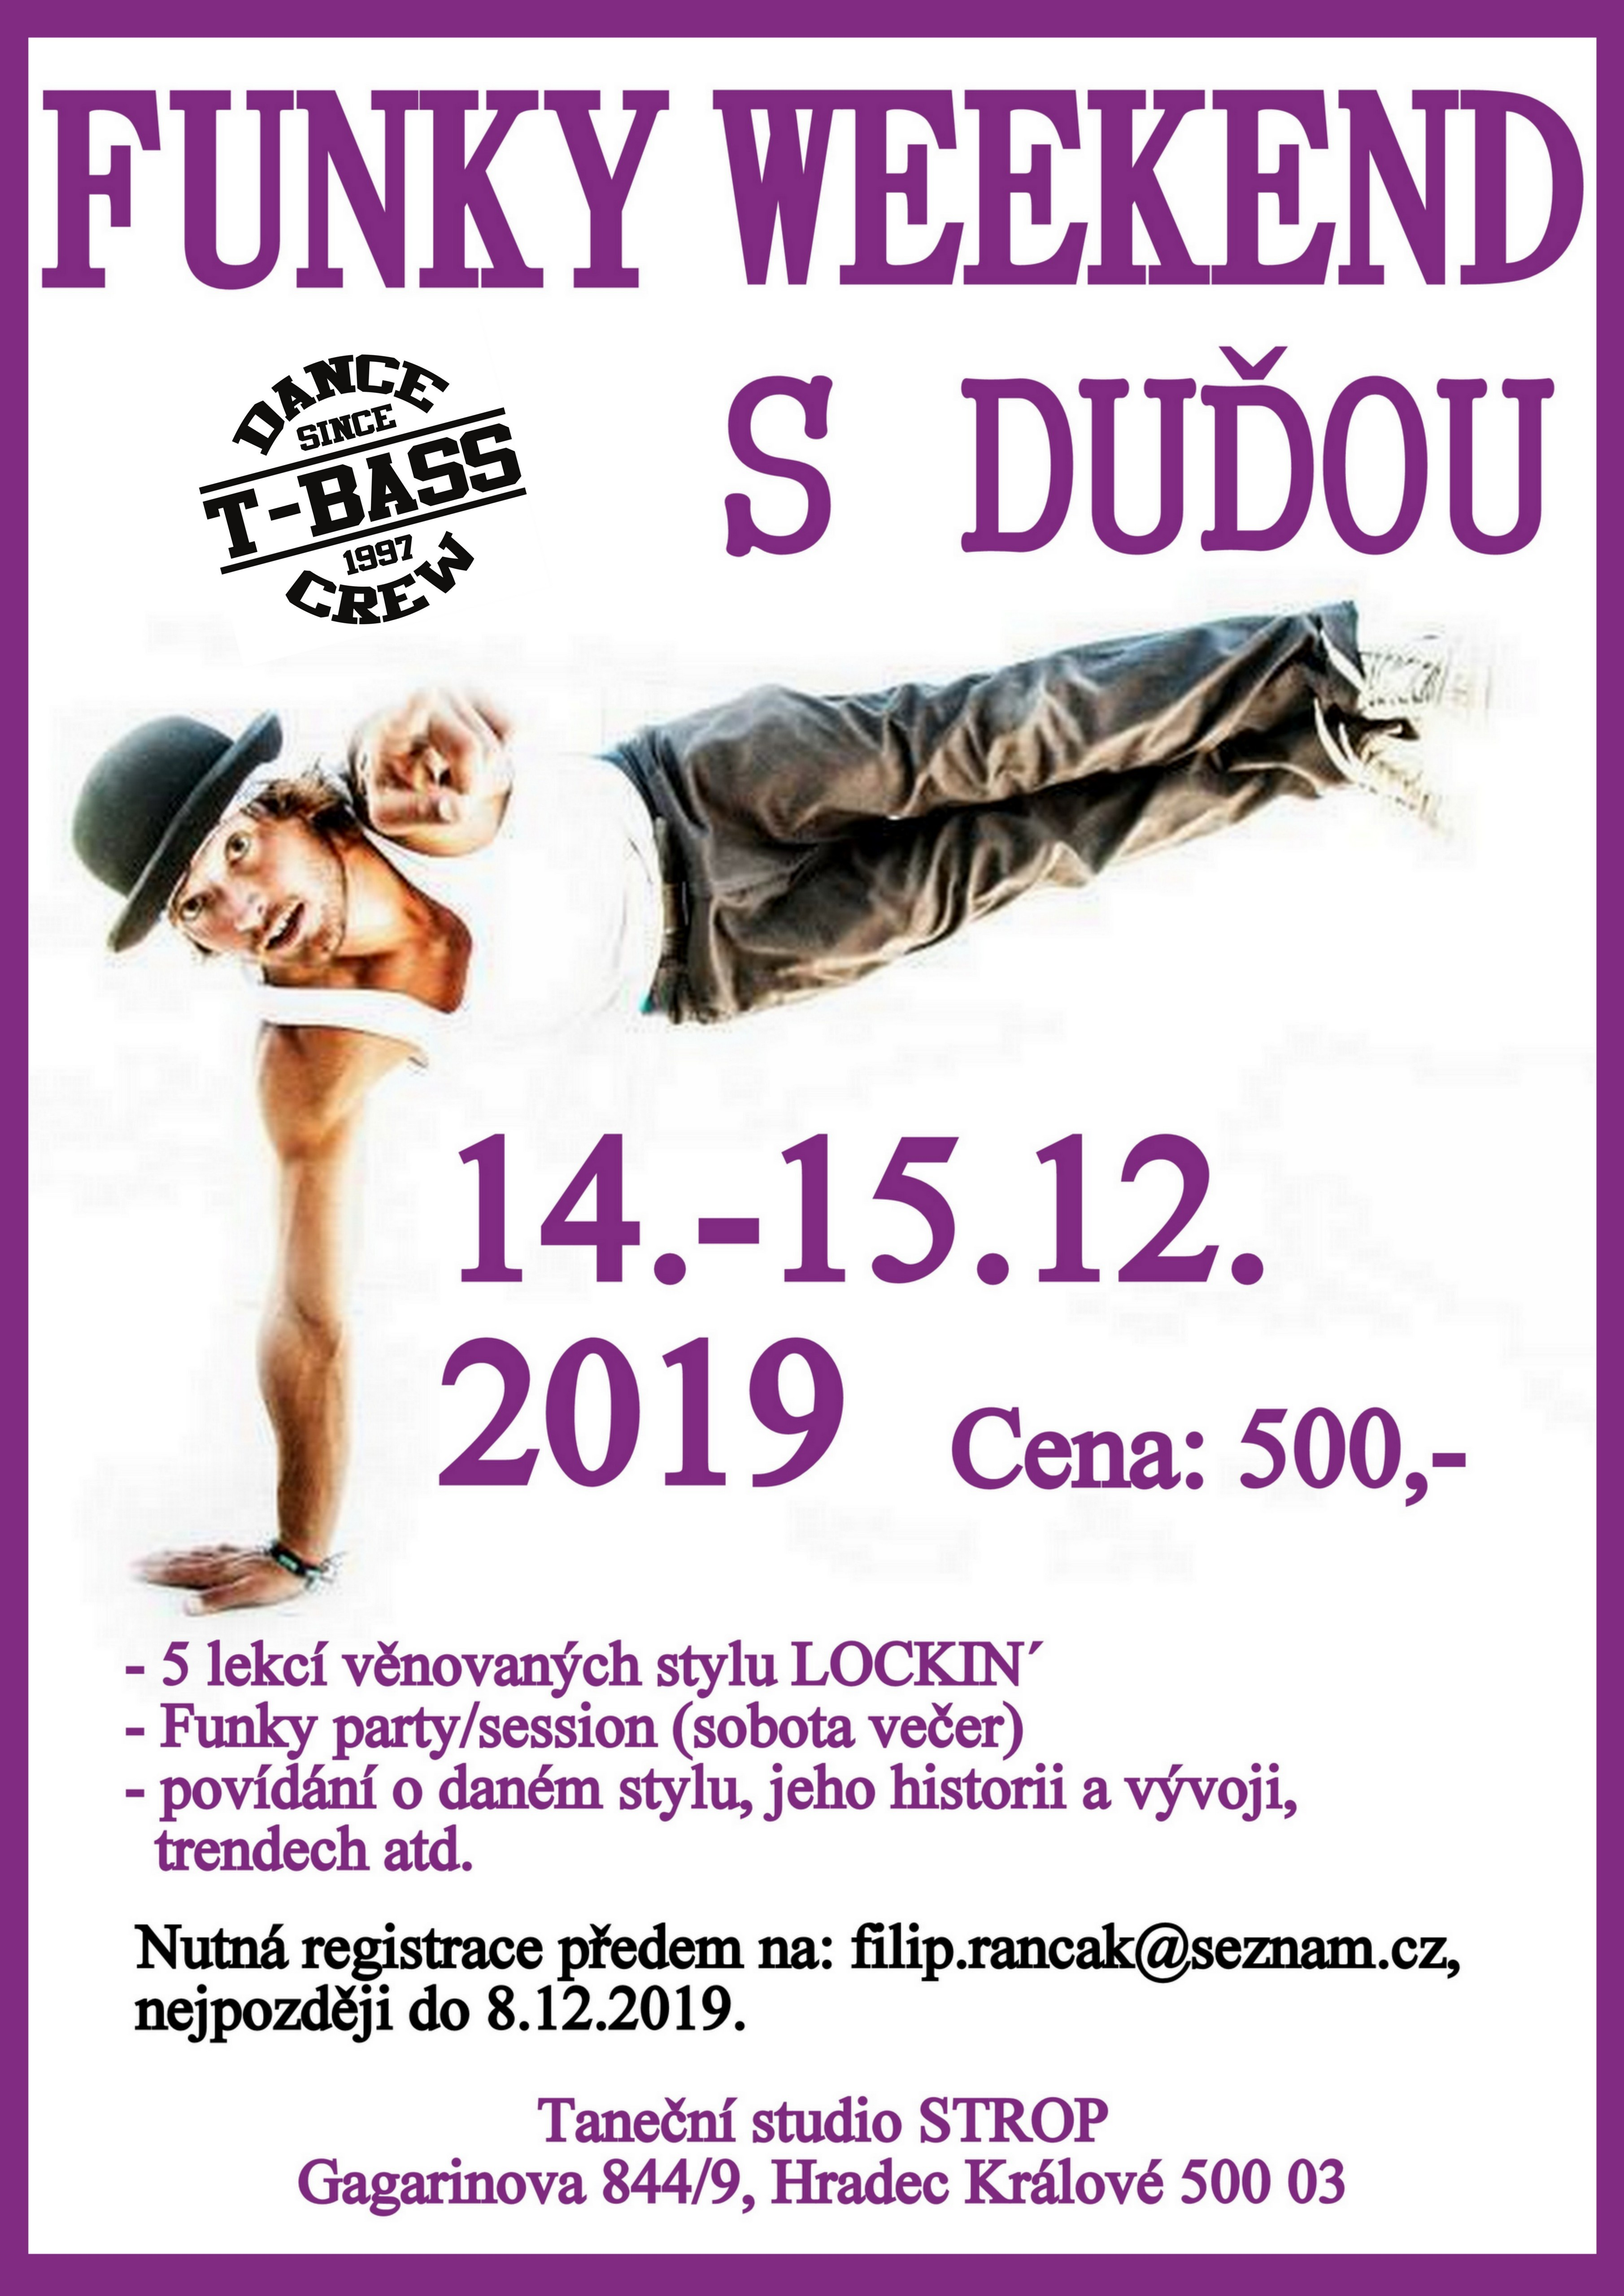 FUNKY WEEKEND – Duďa